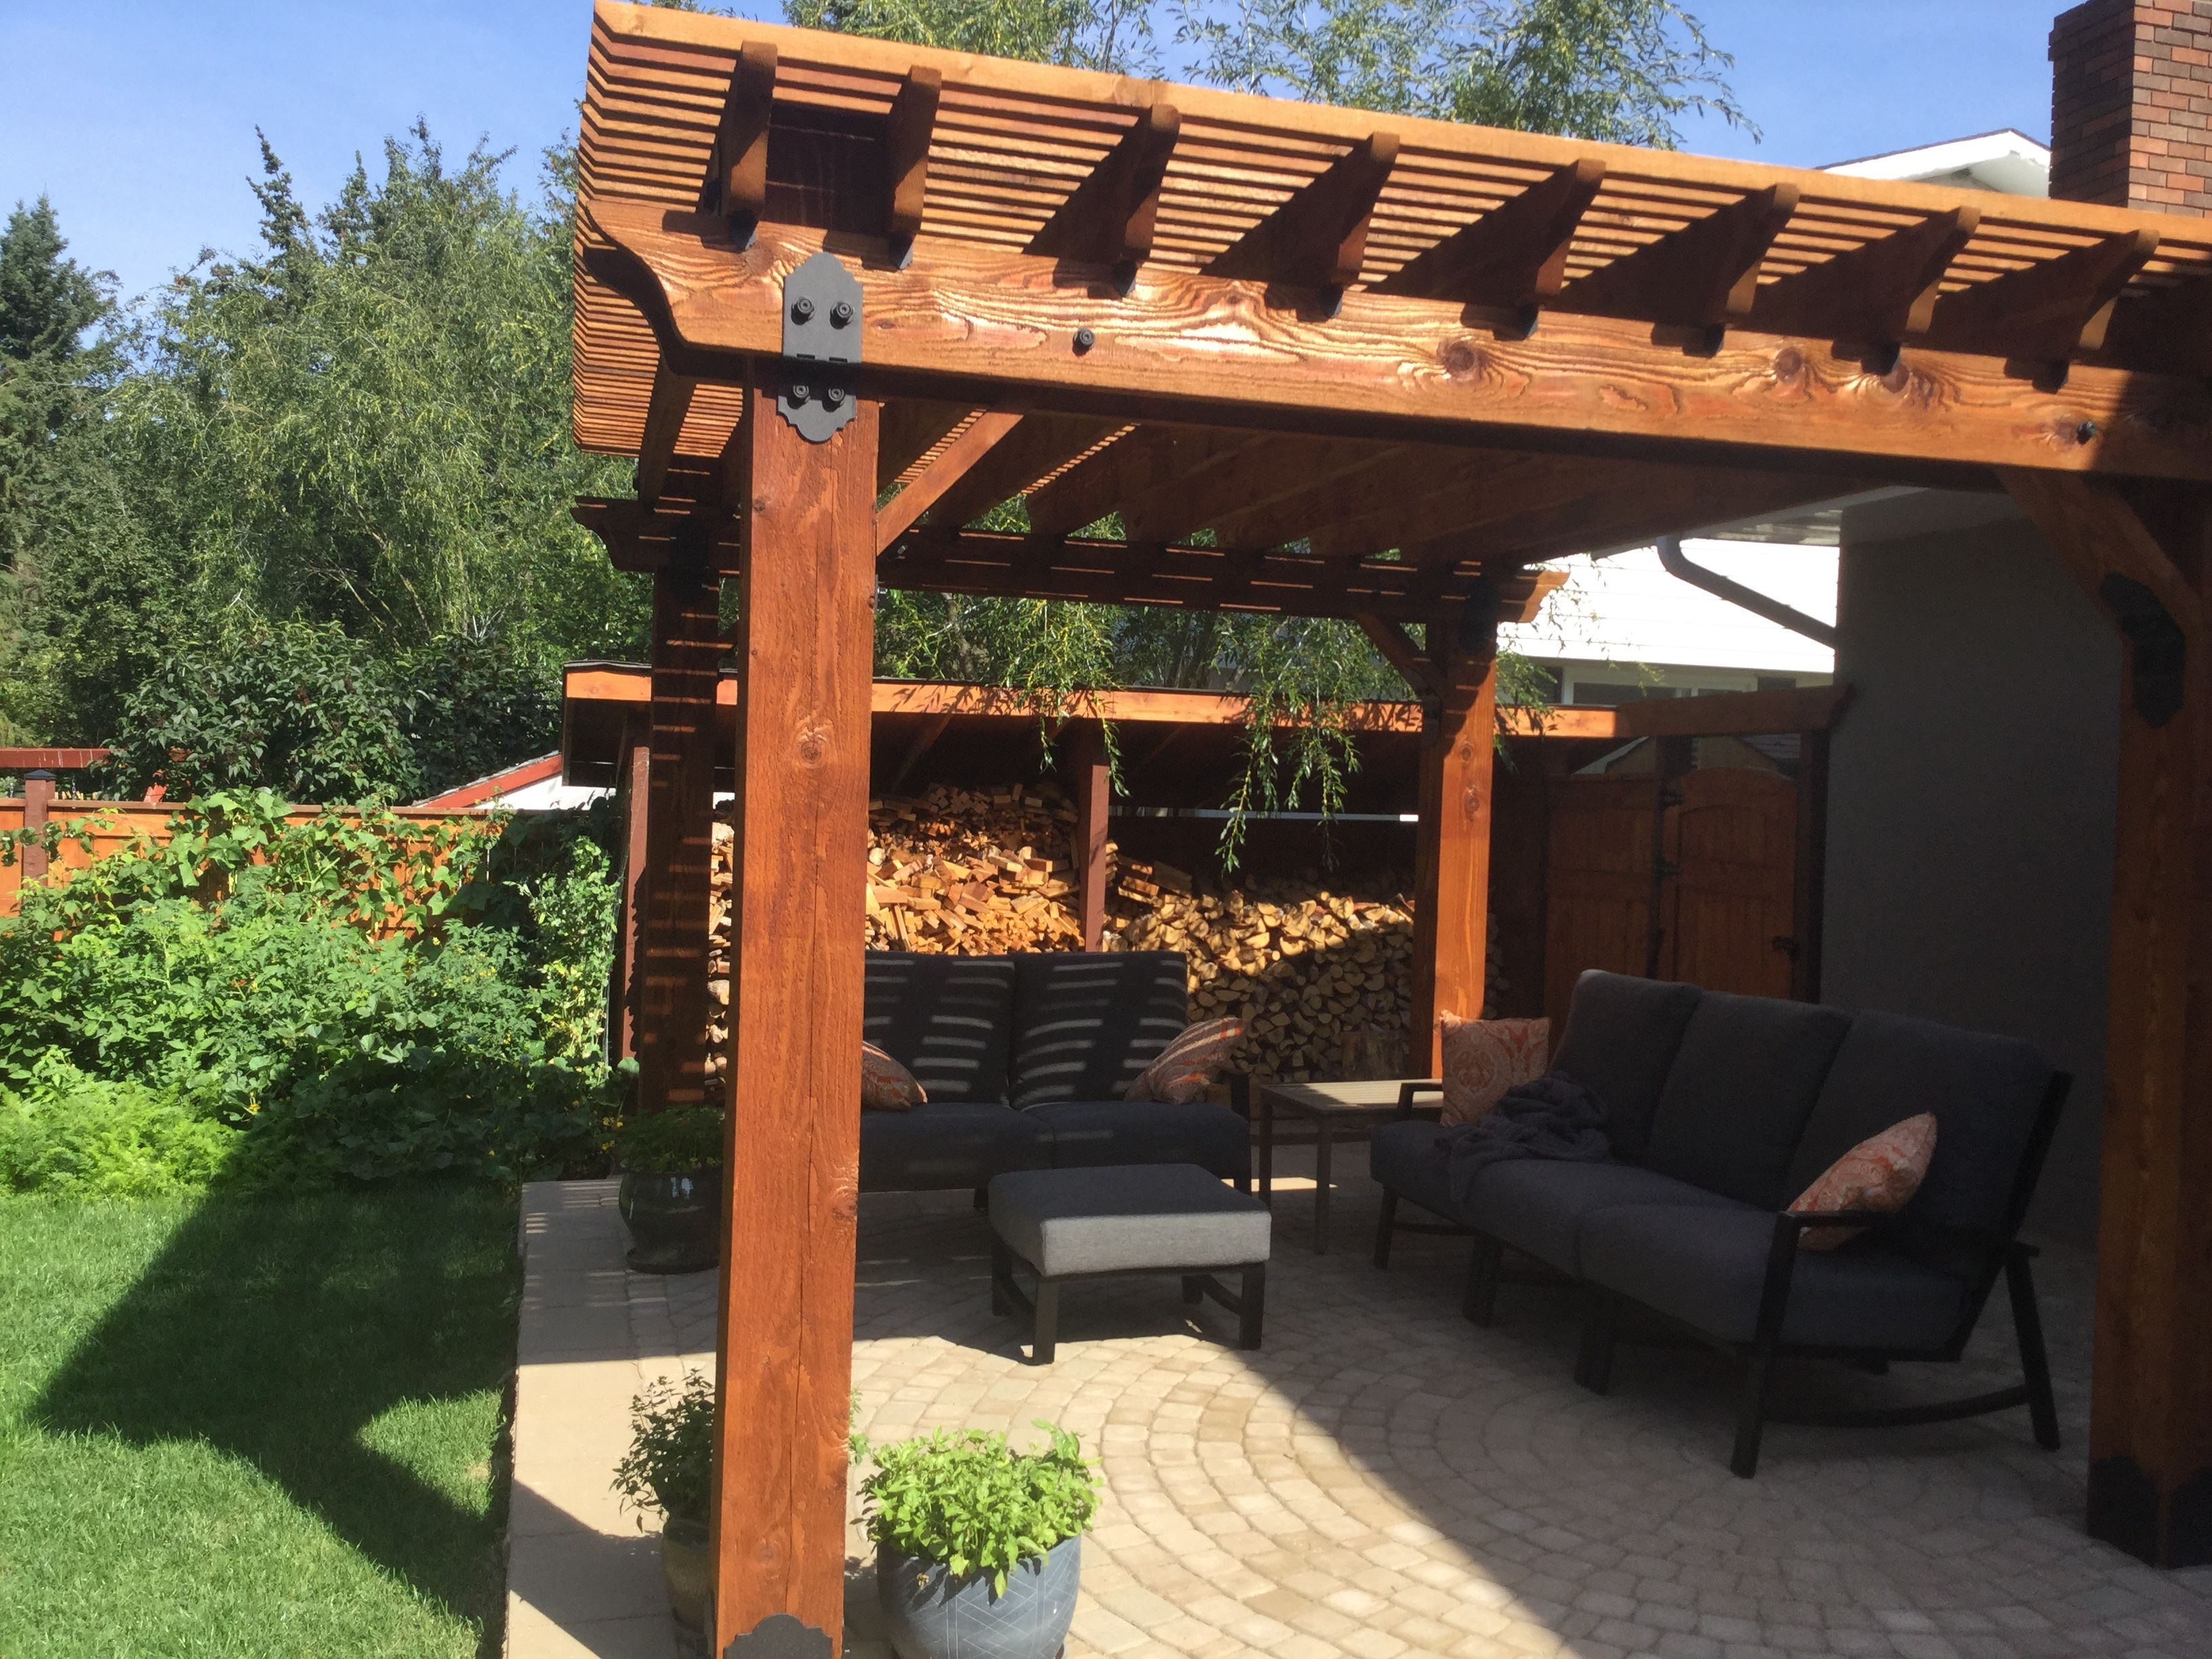 pictures pinterest we best have now living home cover patio contact outdoor pleted improvement design successfully need to solid how build own your construct us photos with new beautiful alumawood of a